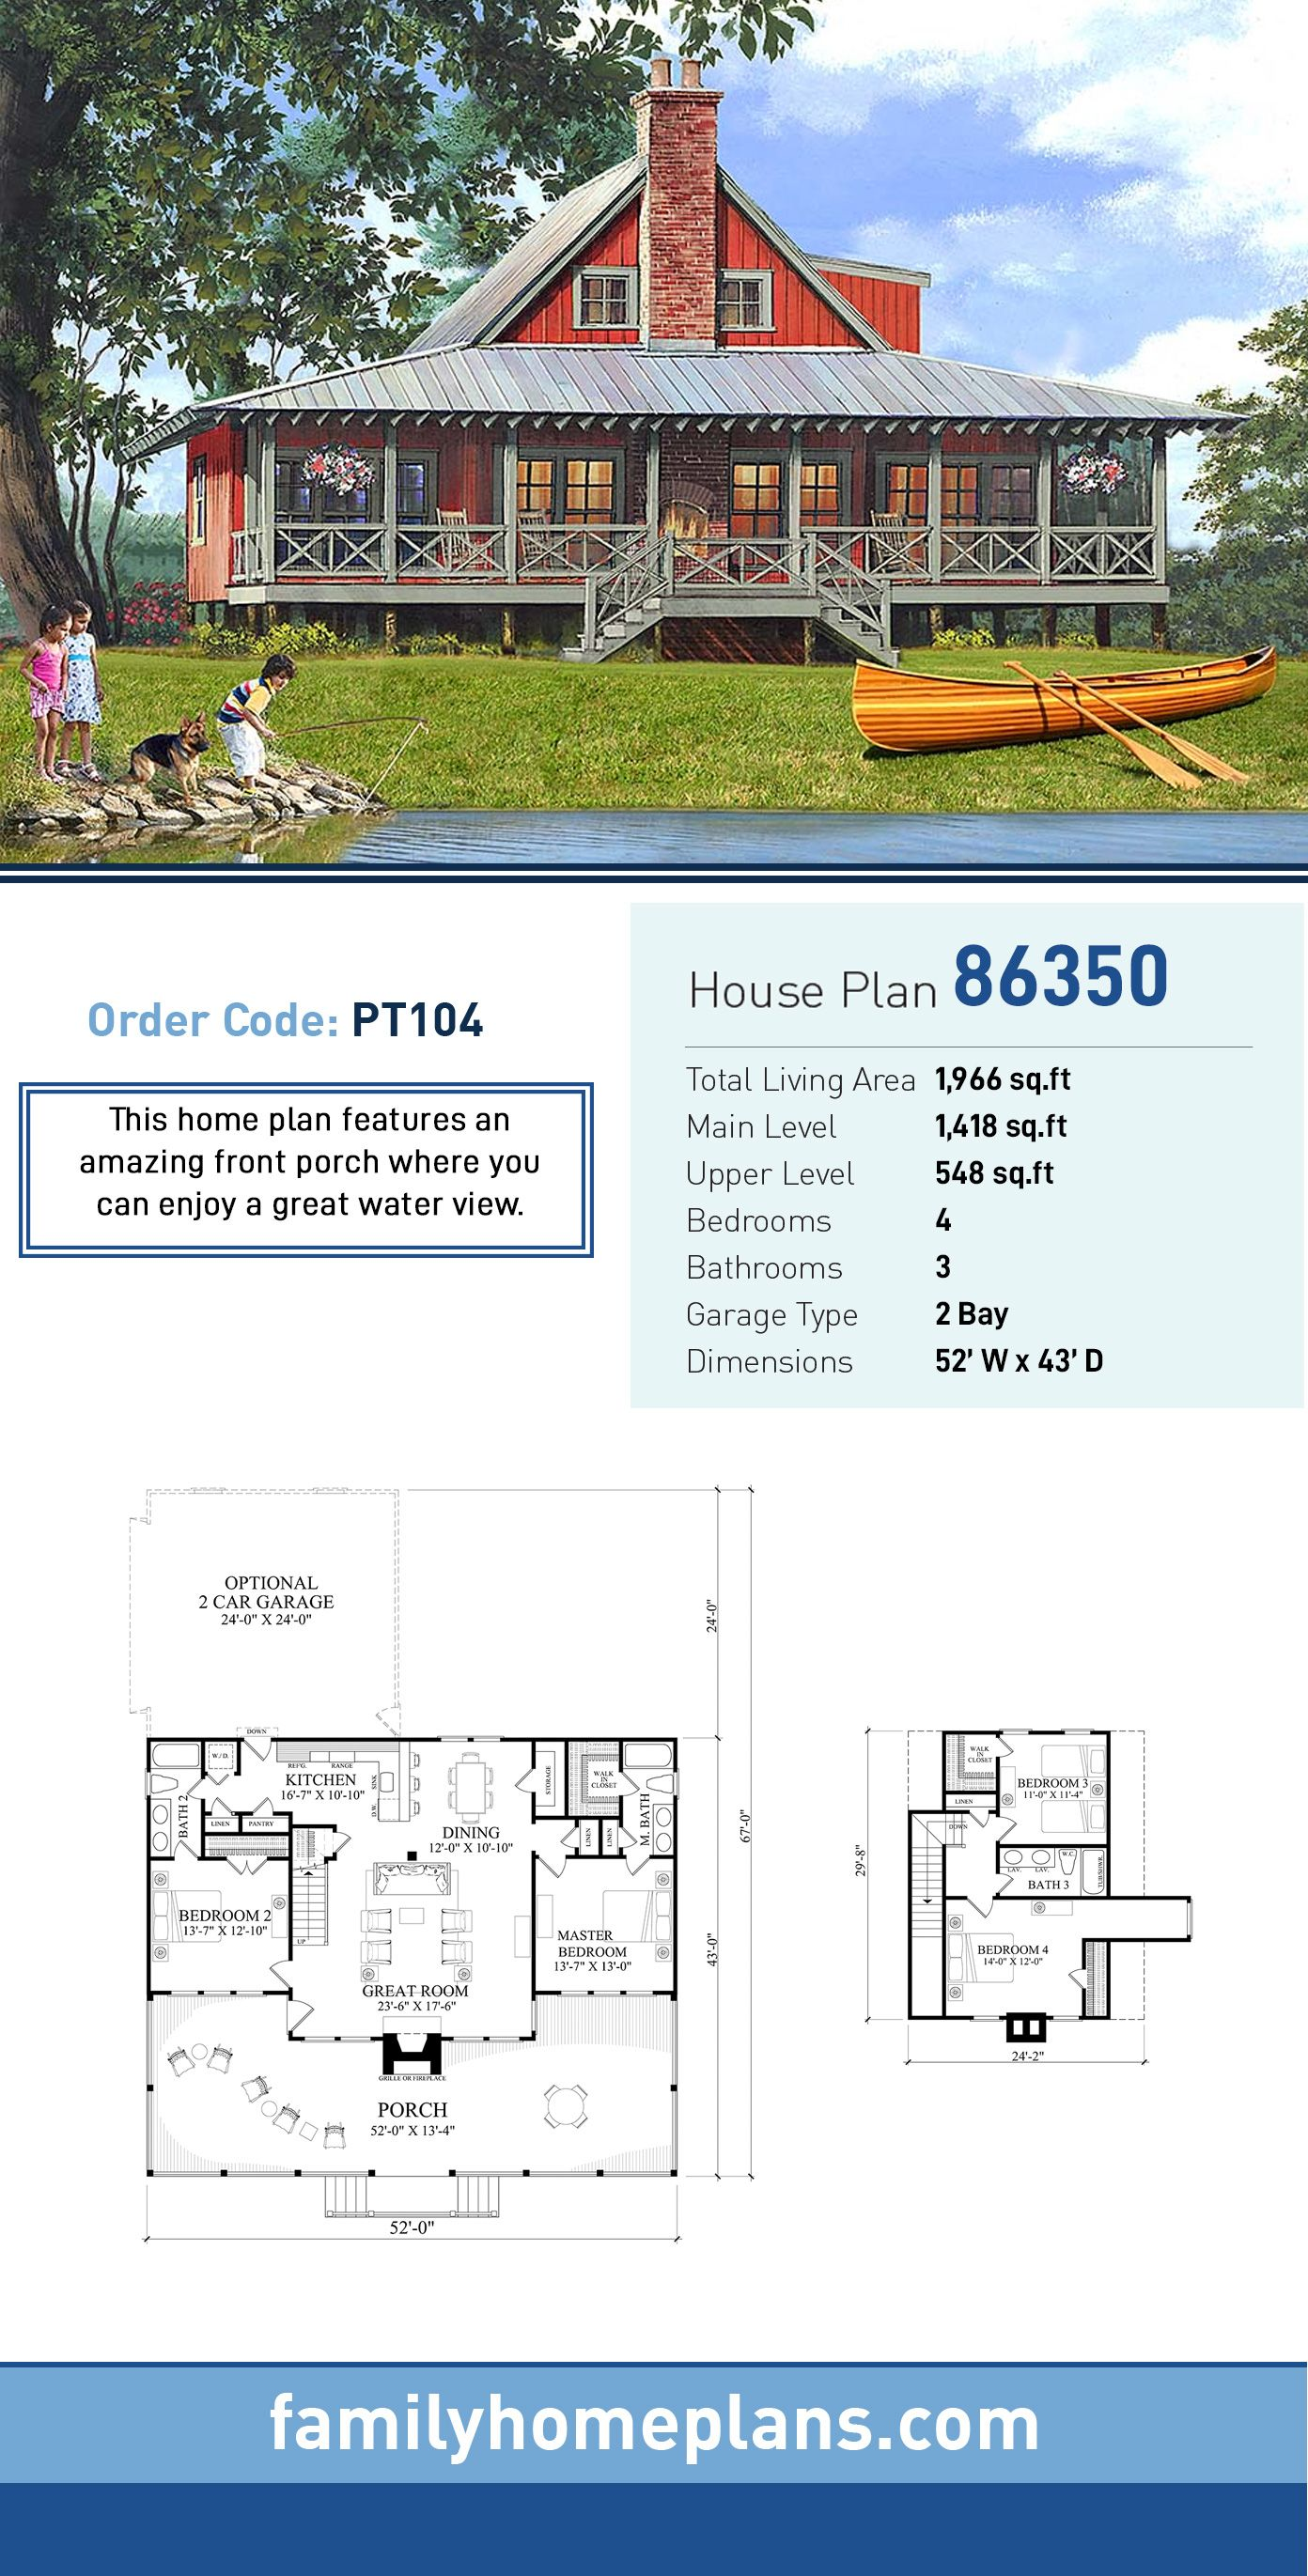 Traditional Style House Plan 86350 With 4 Bed 3 Bath 2 Car Garage Coastal House Plans House Plans Farmhouse Lake House Plans